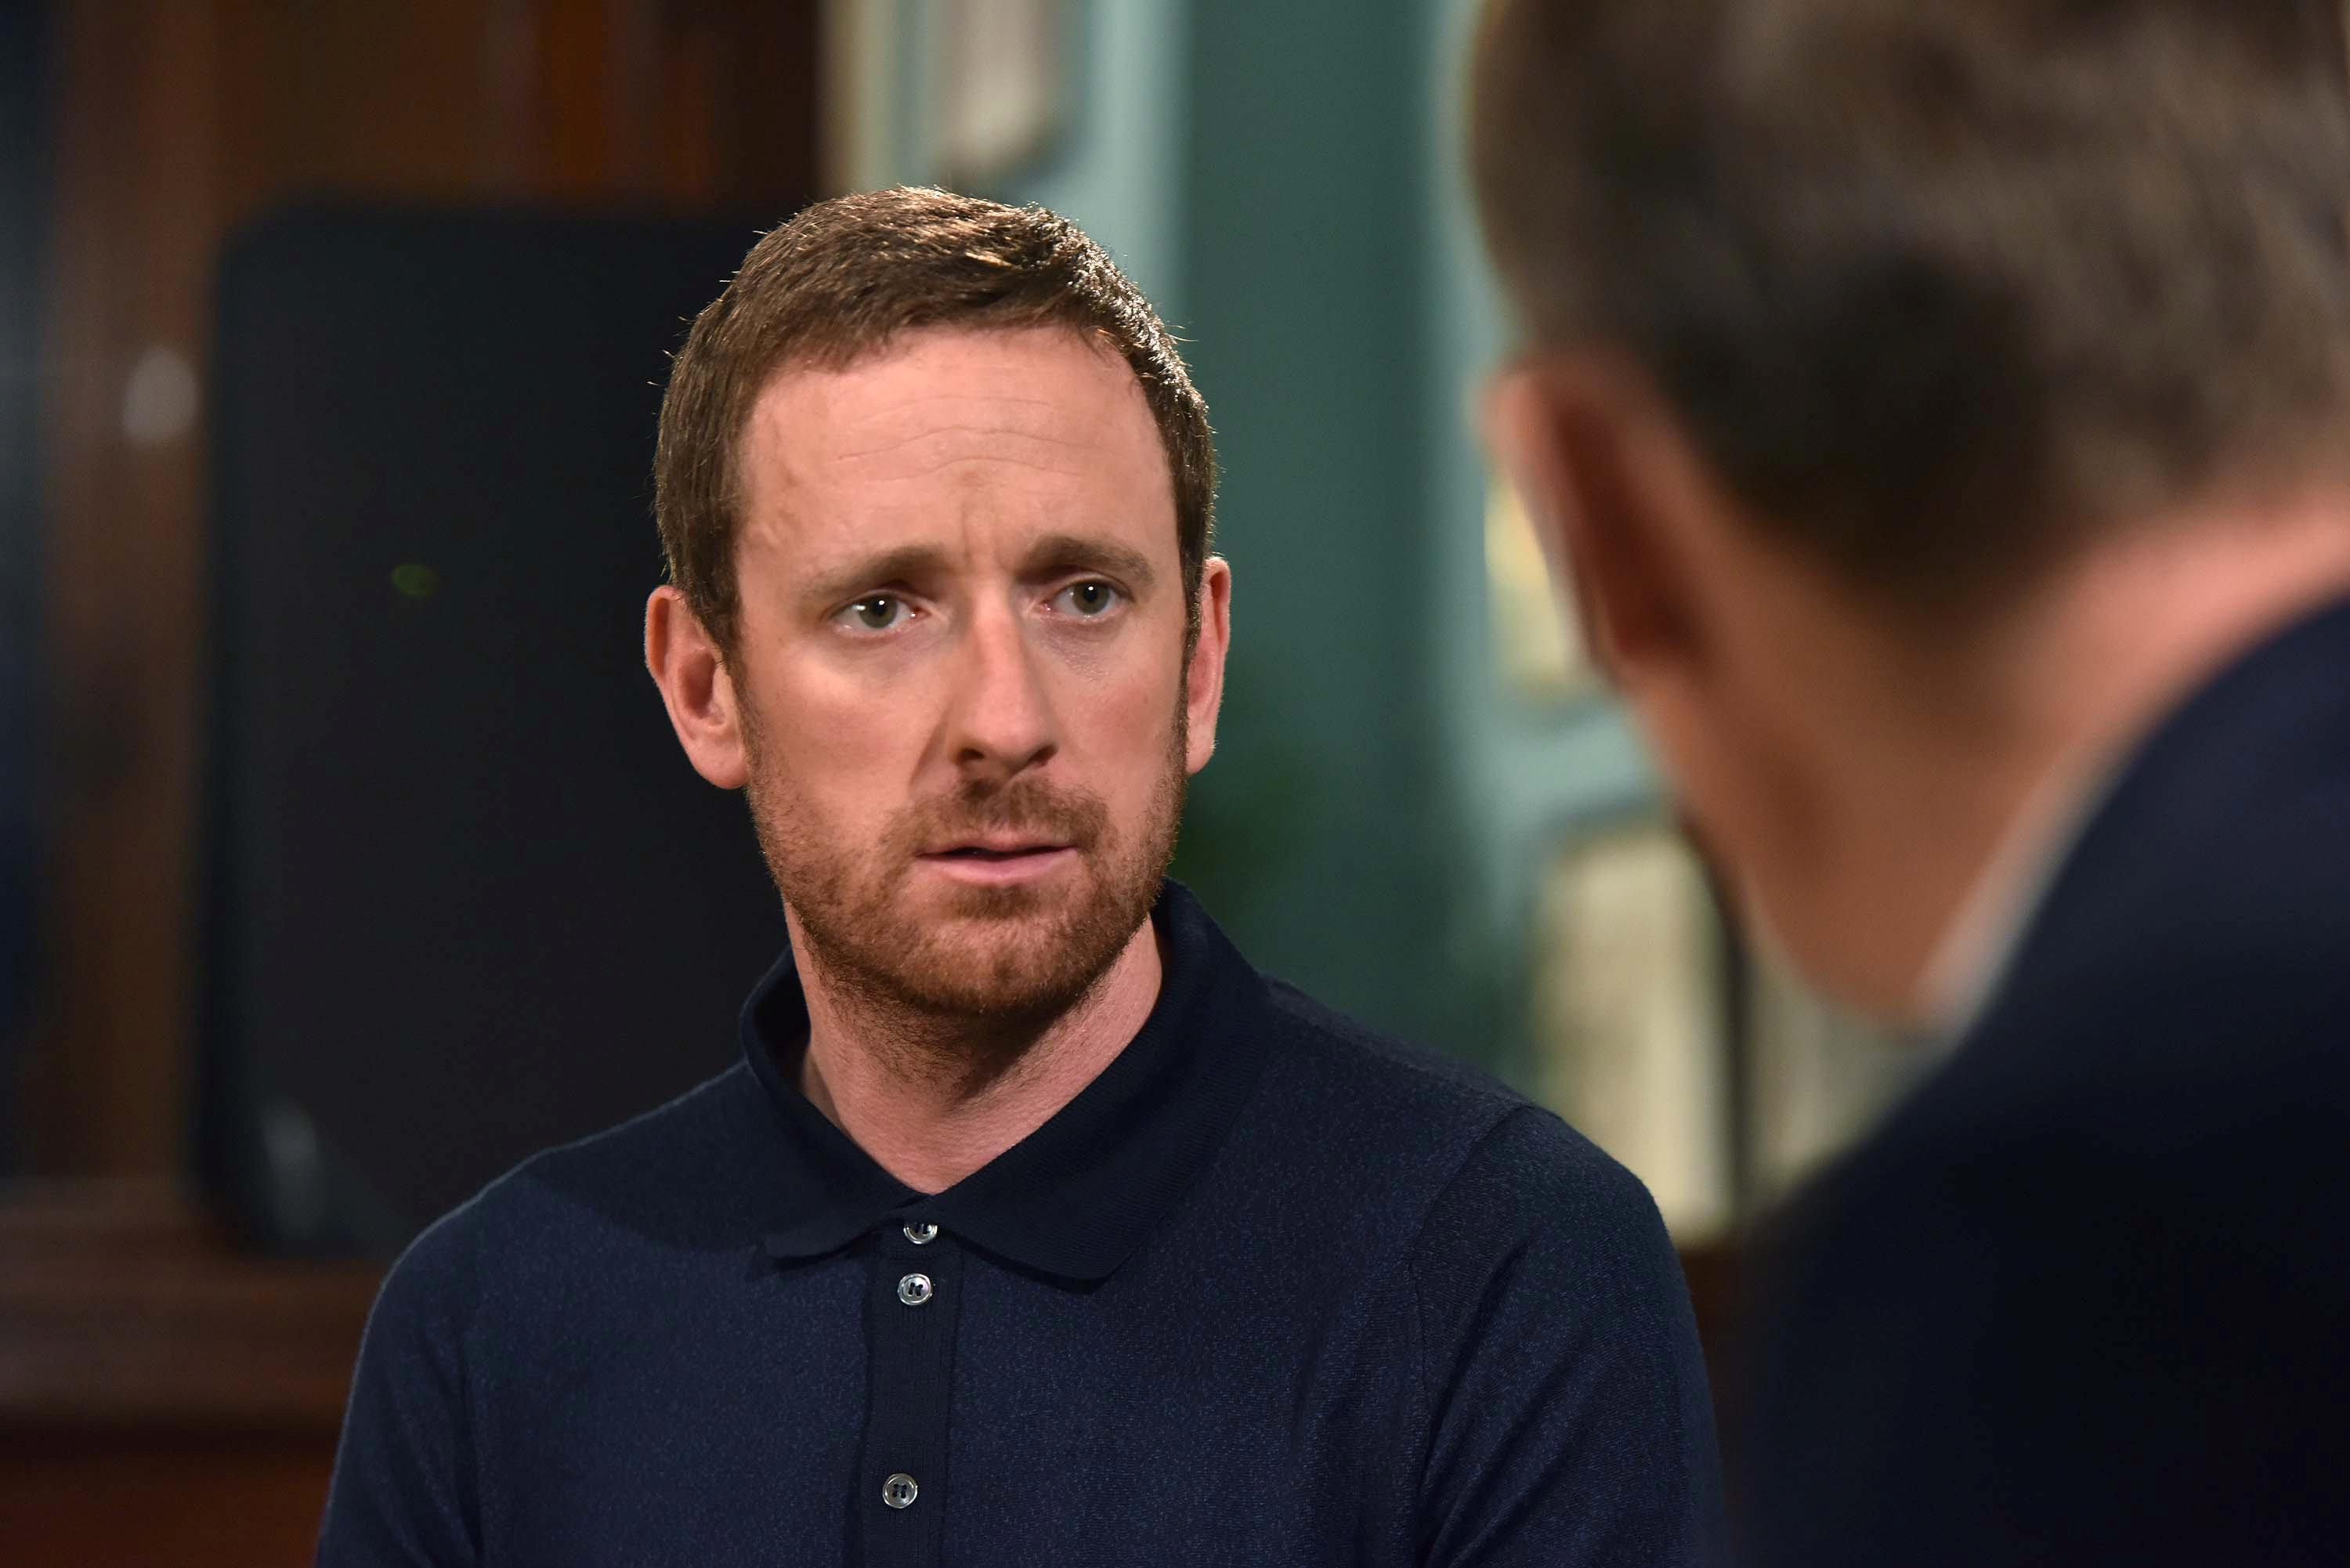 Wiggins has come out fighting after the DCMS report and insisted he has never broken any doping rules